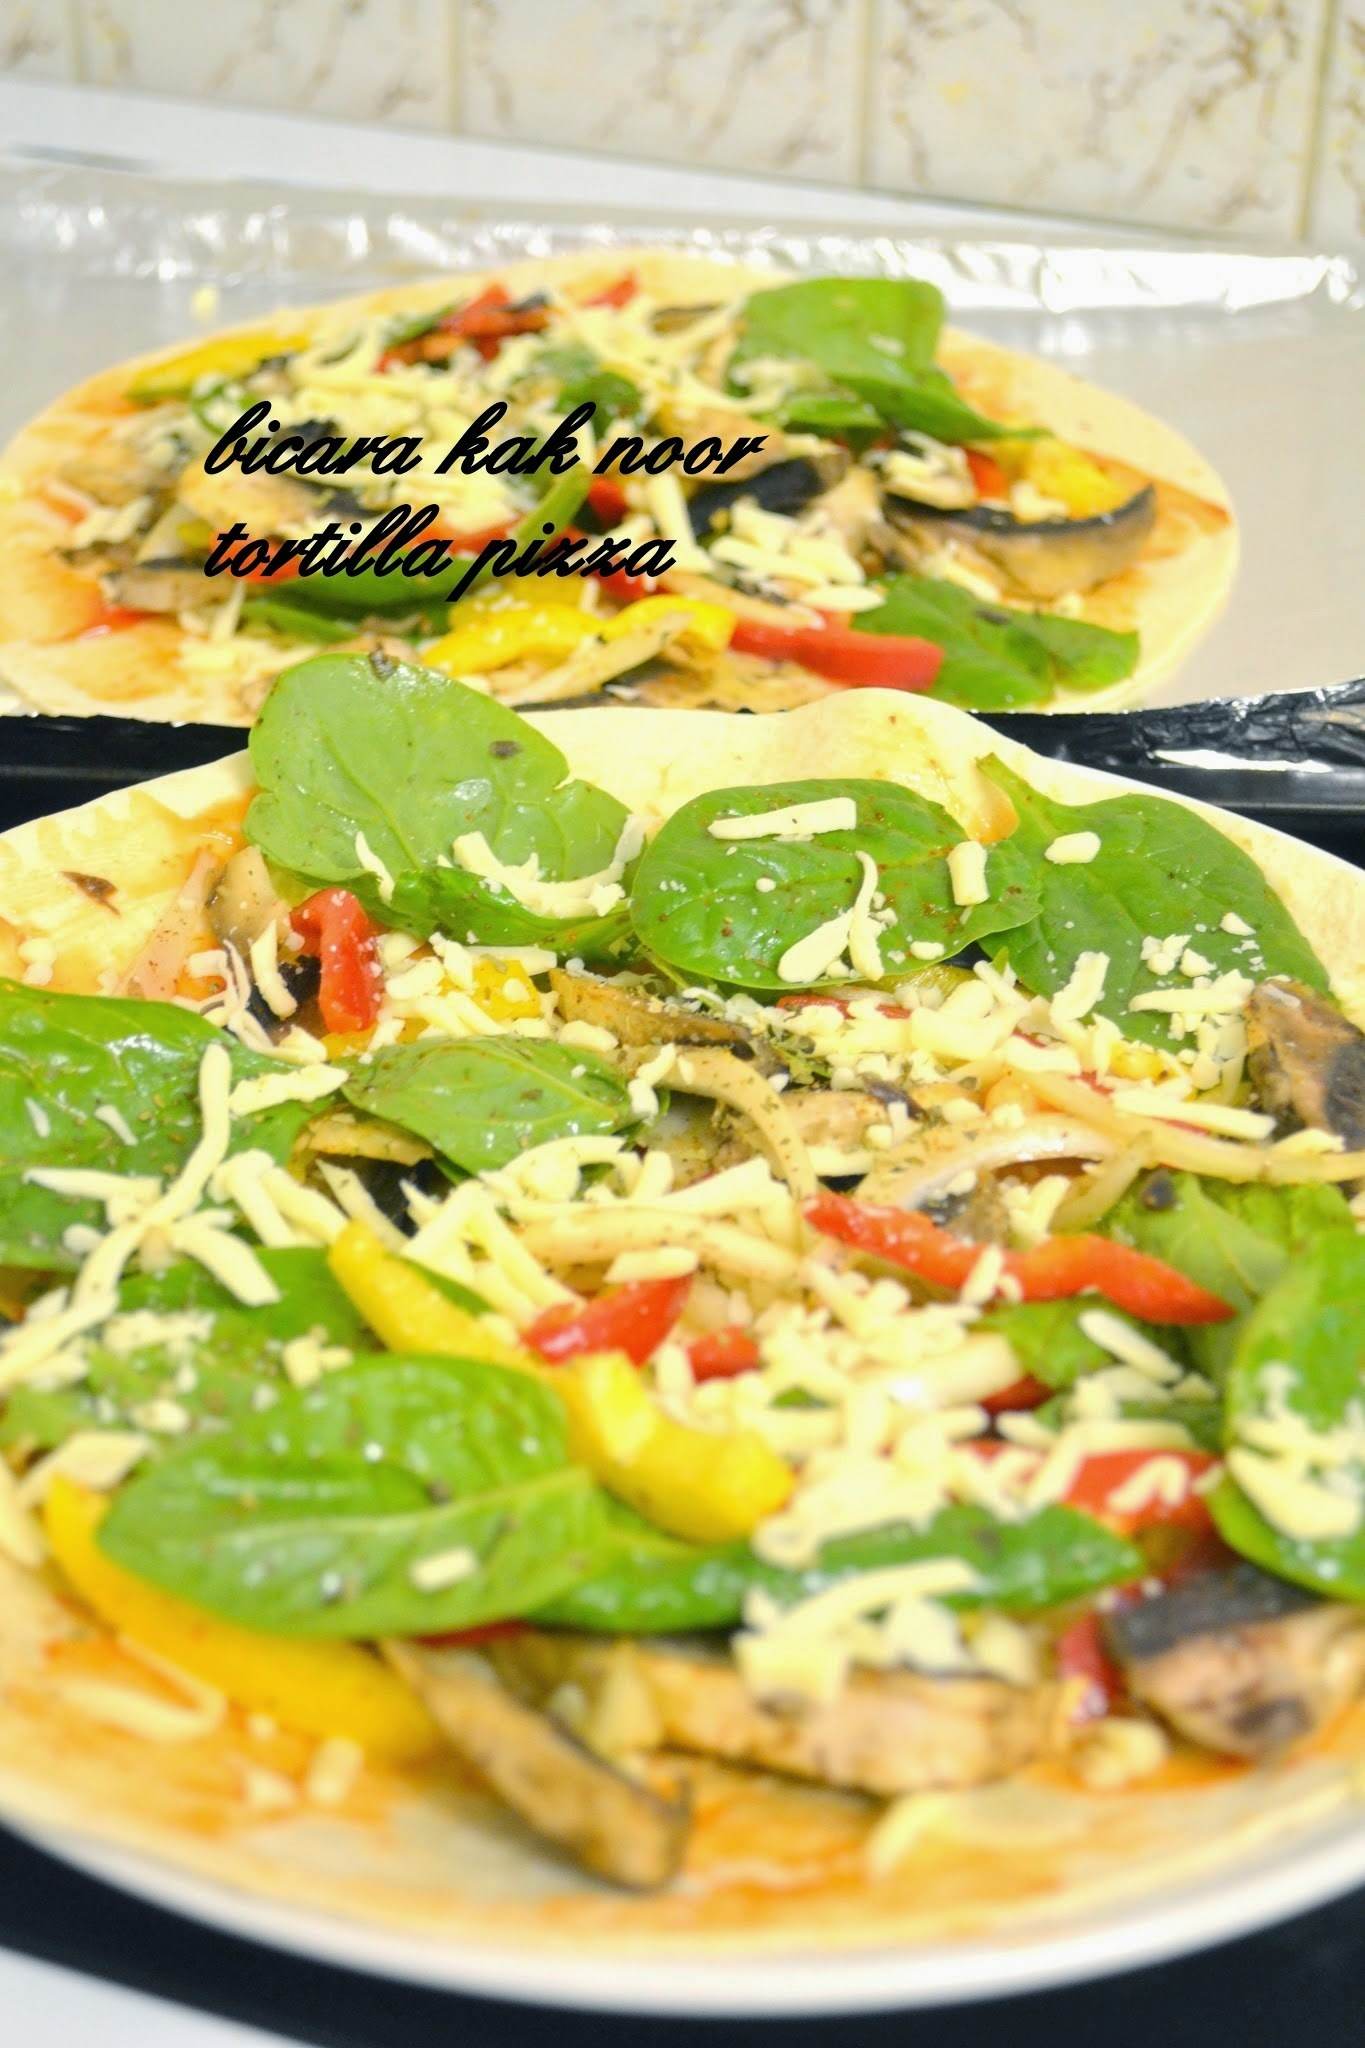 Vegetarian Tortilla Pizza Crispy & Sedap